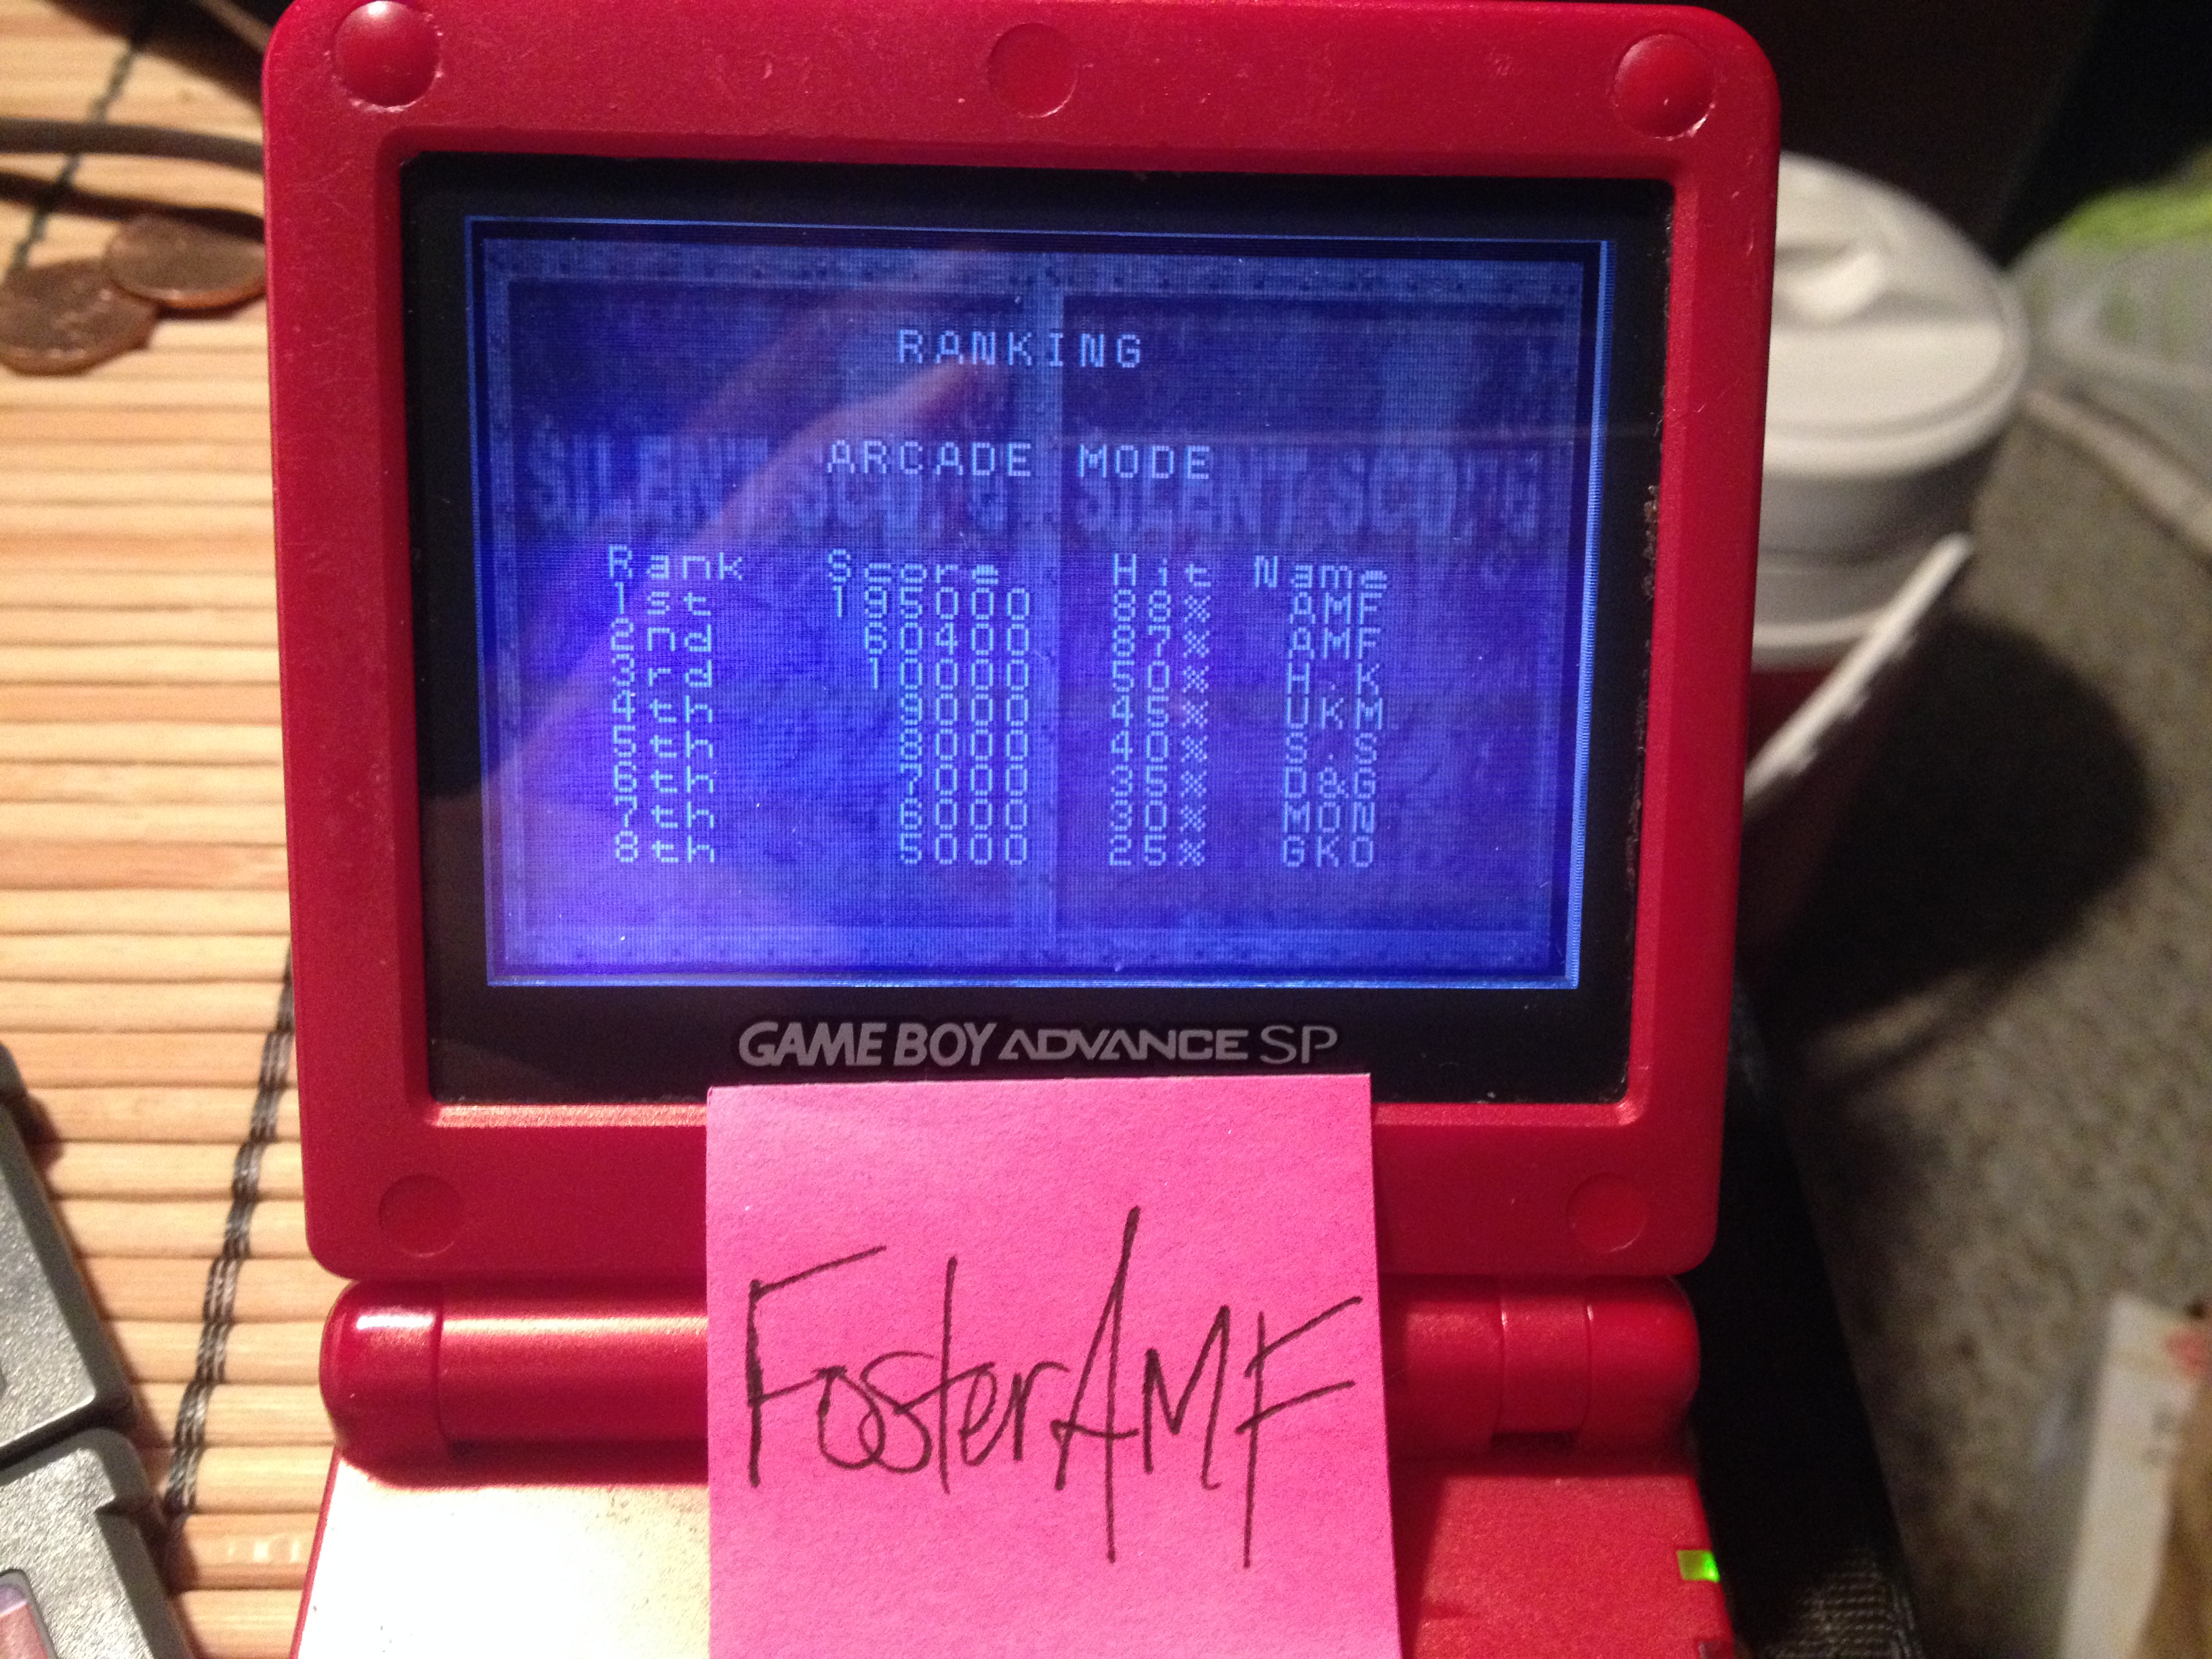 FosterAMF: Silent Scope [Arcade Mode] (GBA) 195,000 points on 2014-11-18 13:45:15